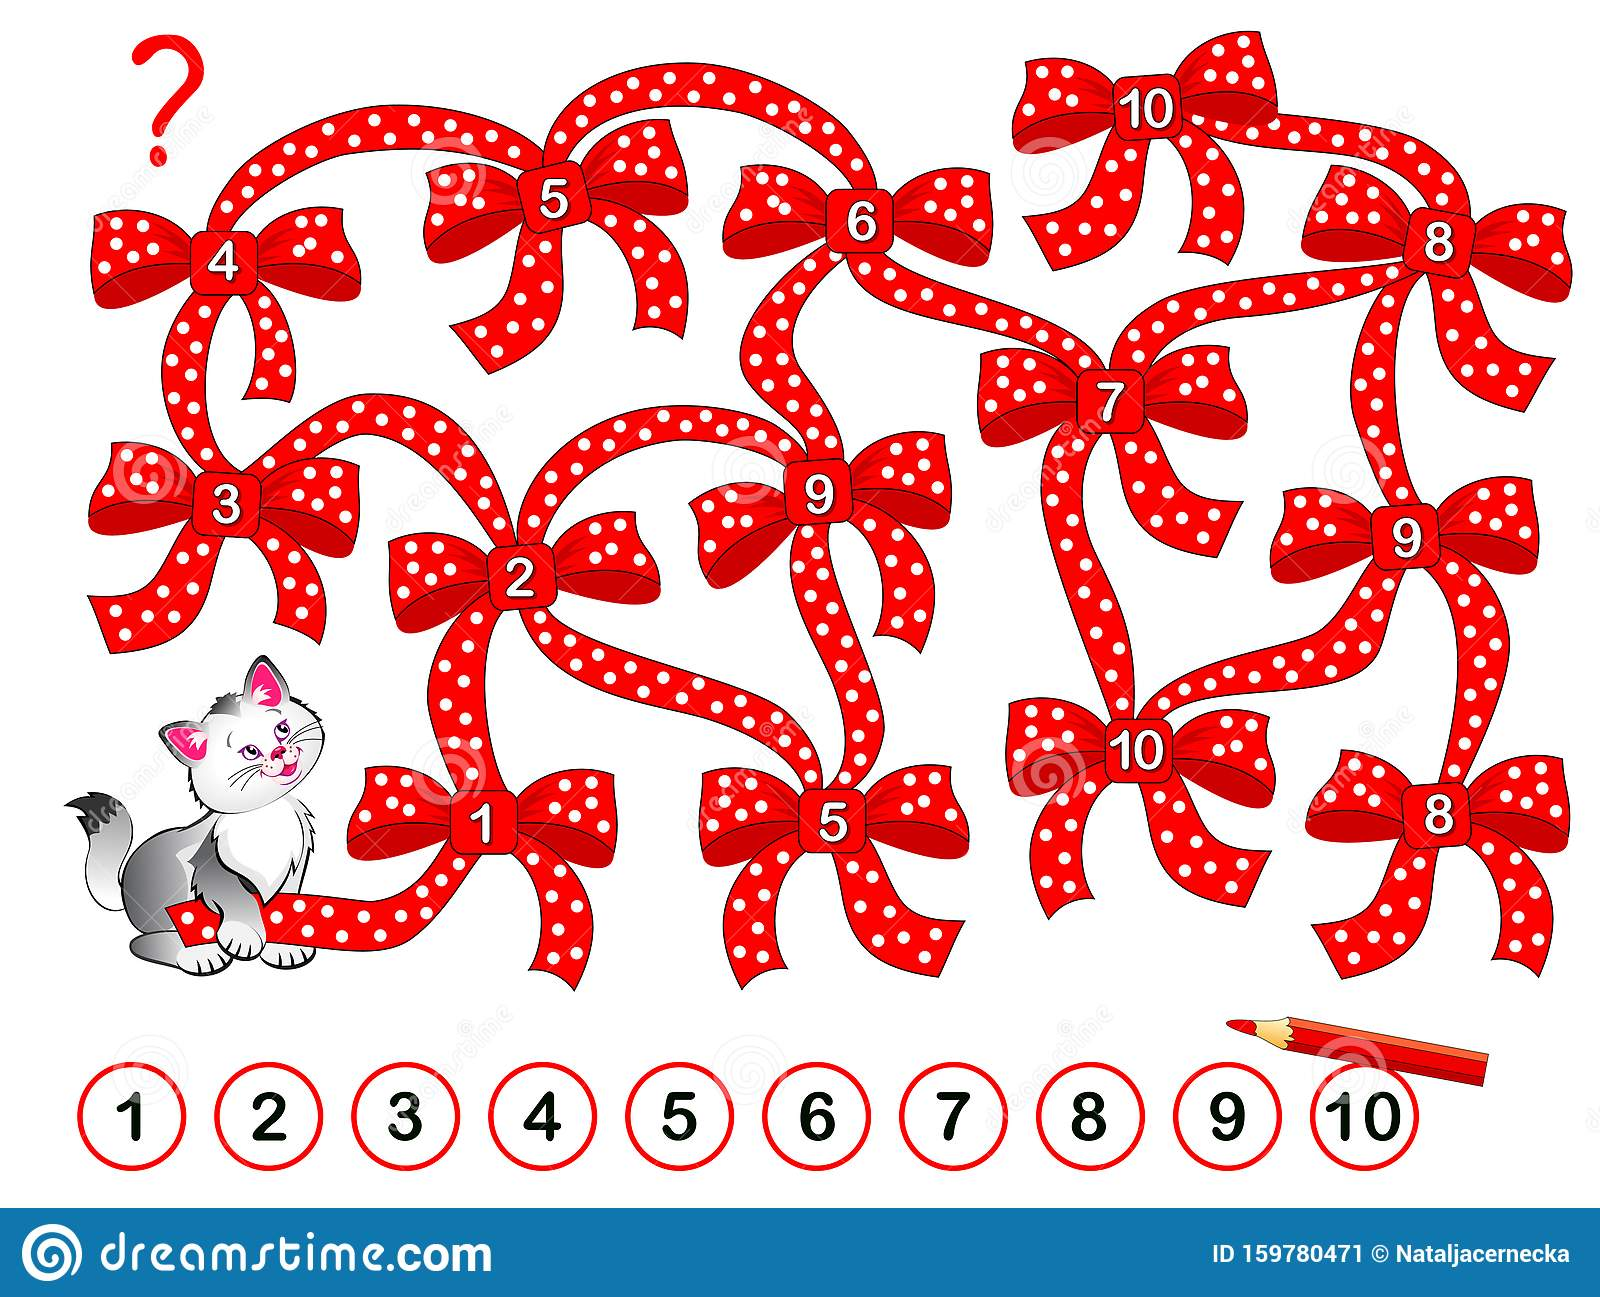 Logic Puzzle Game For Children With Labyrinth Printable